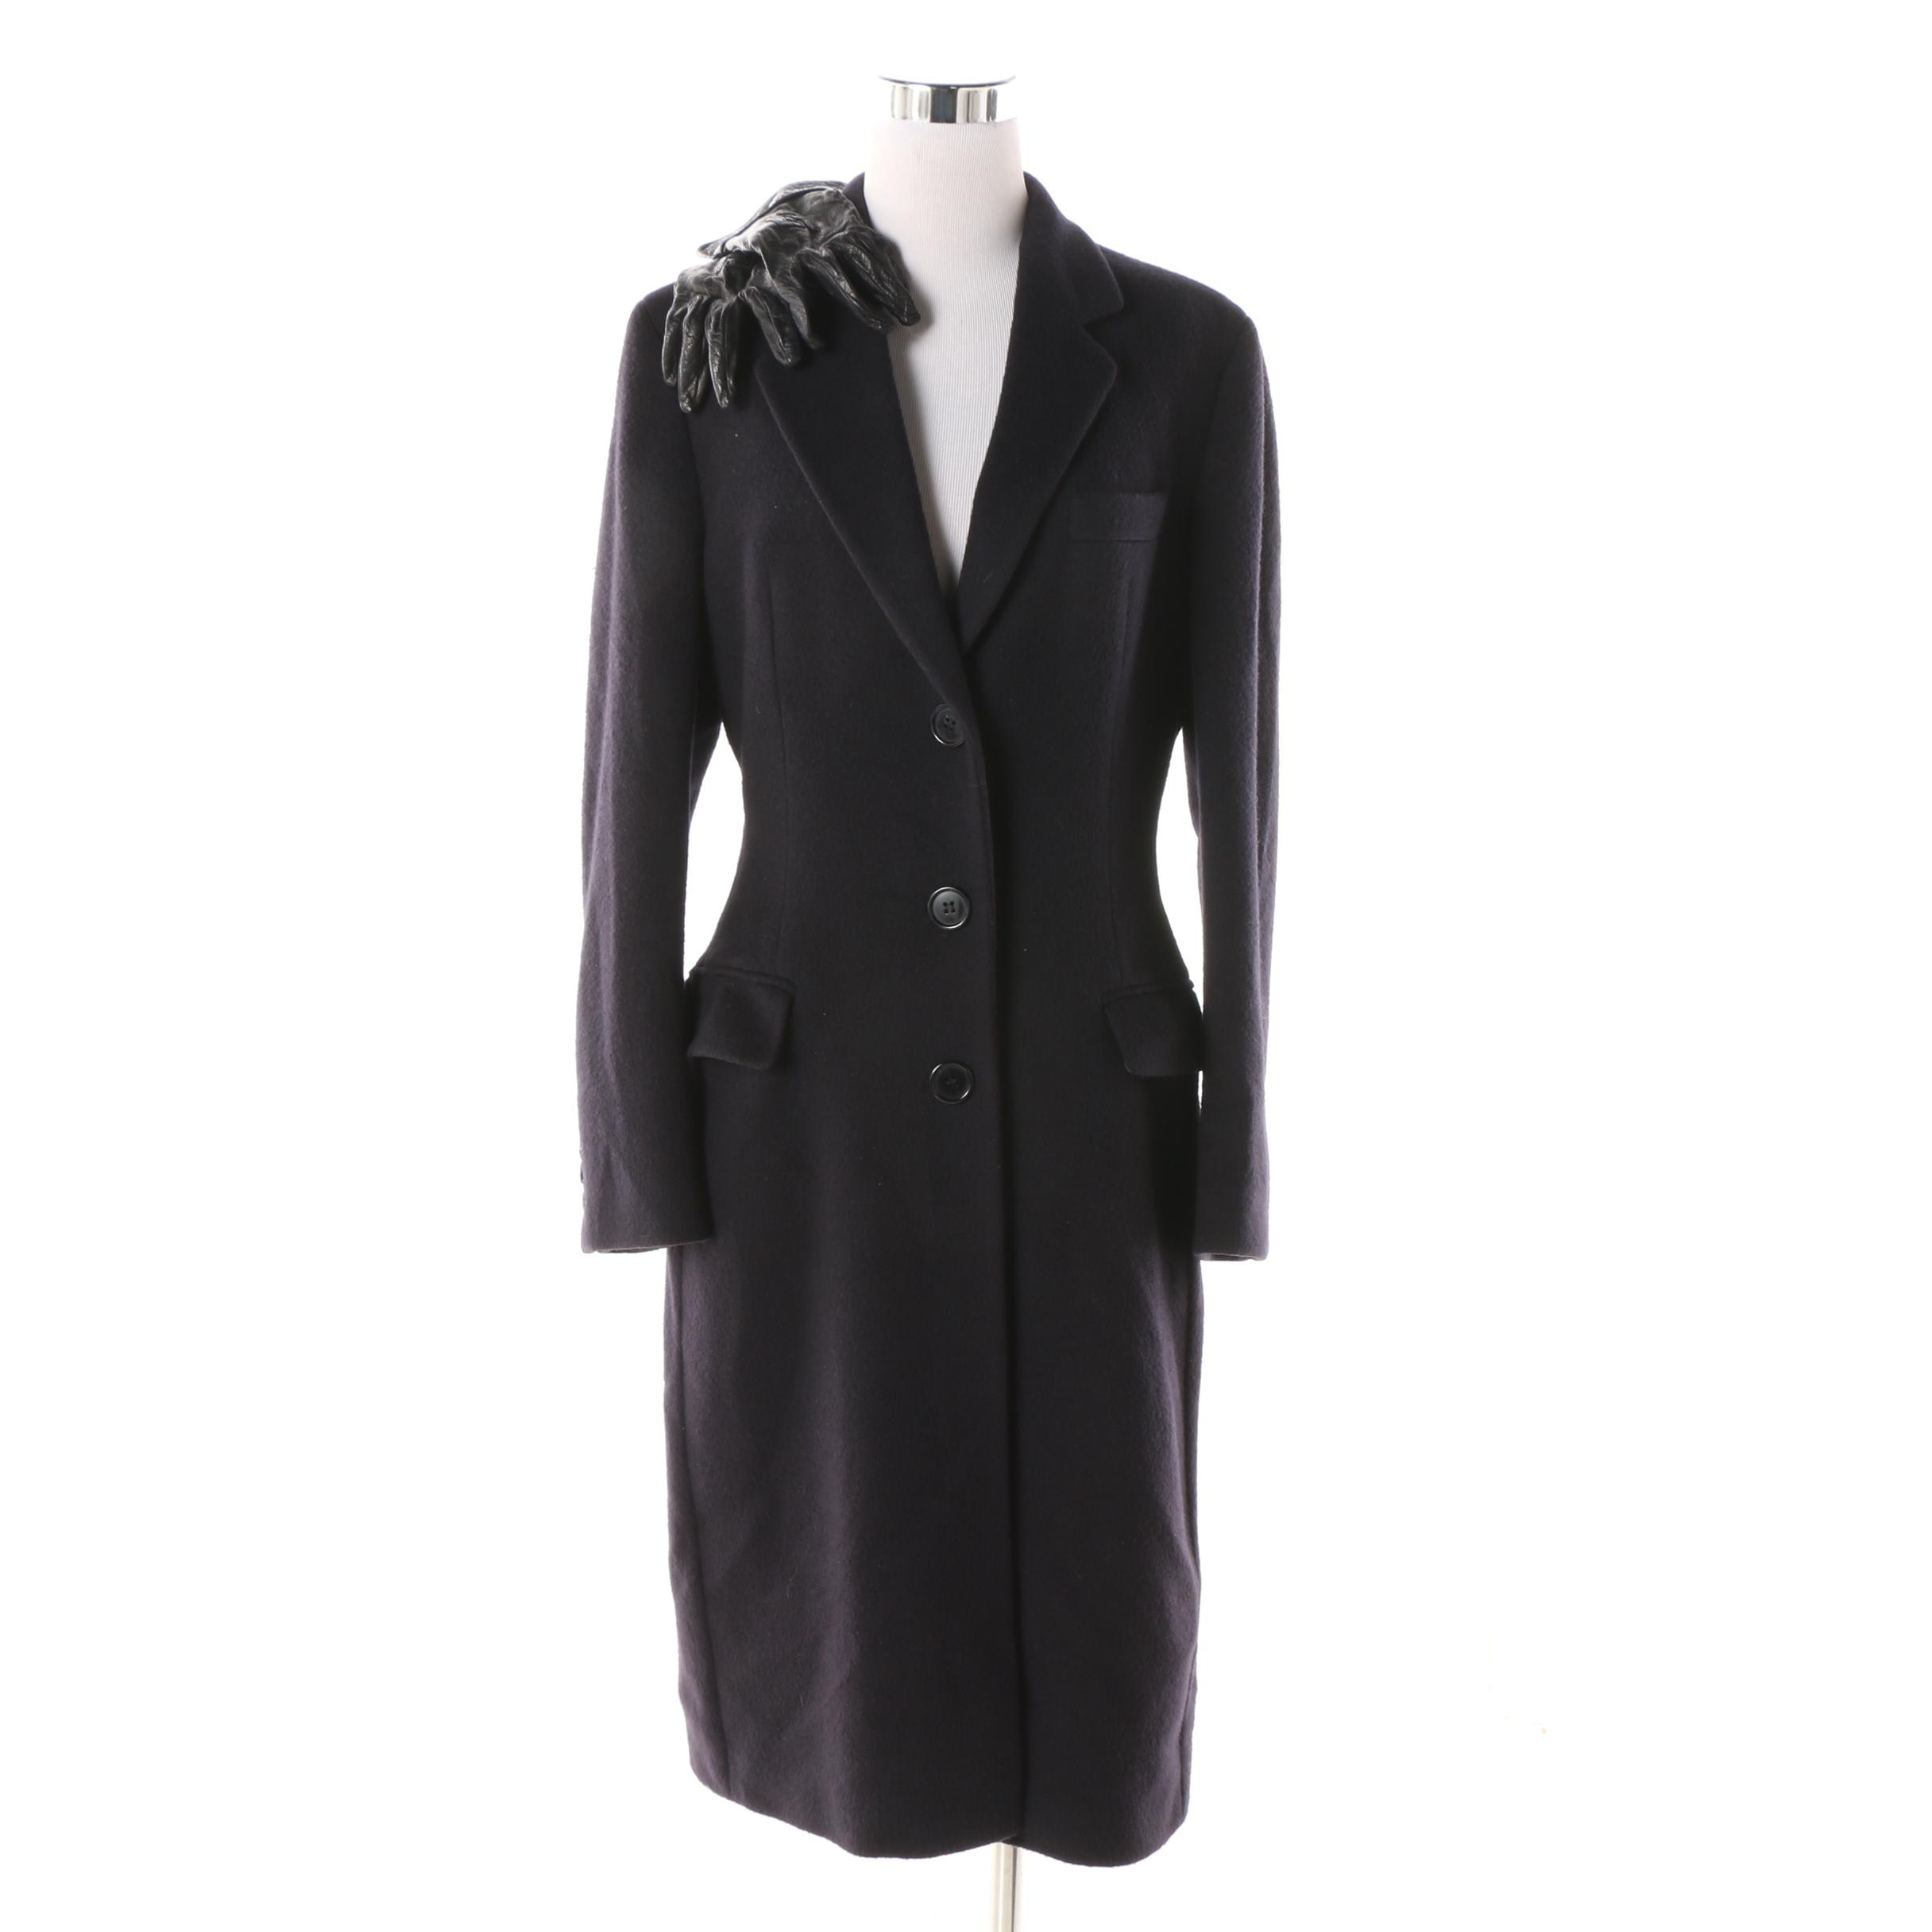 Women's Dolce & Gabbana Dark Navy Cashmere Coat with Fendi Black Leather Gloves